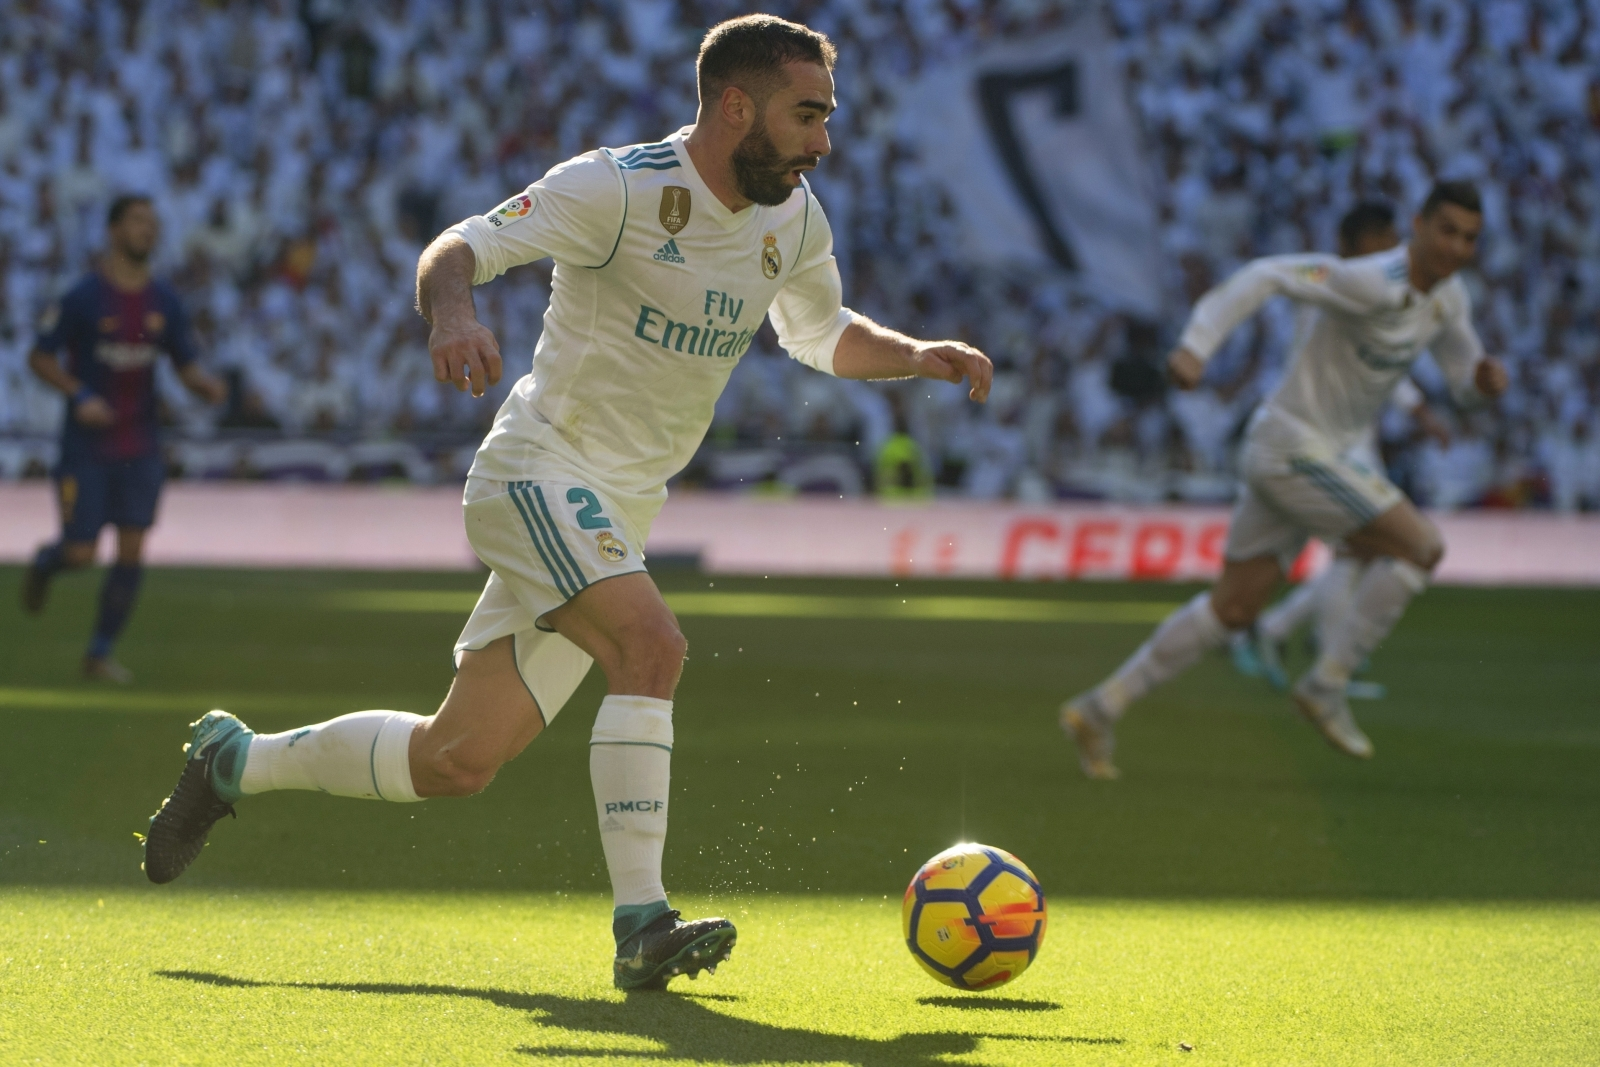 Real Madrid's Dani Carvajal to miss Champions League clash with PSG